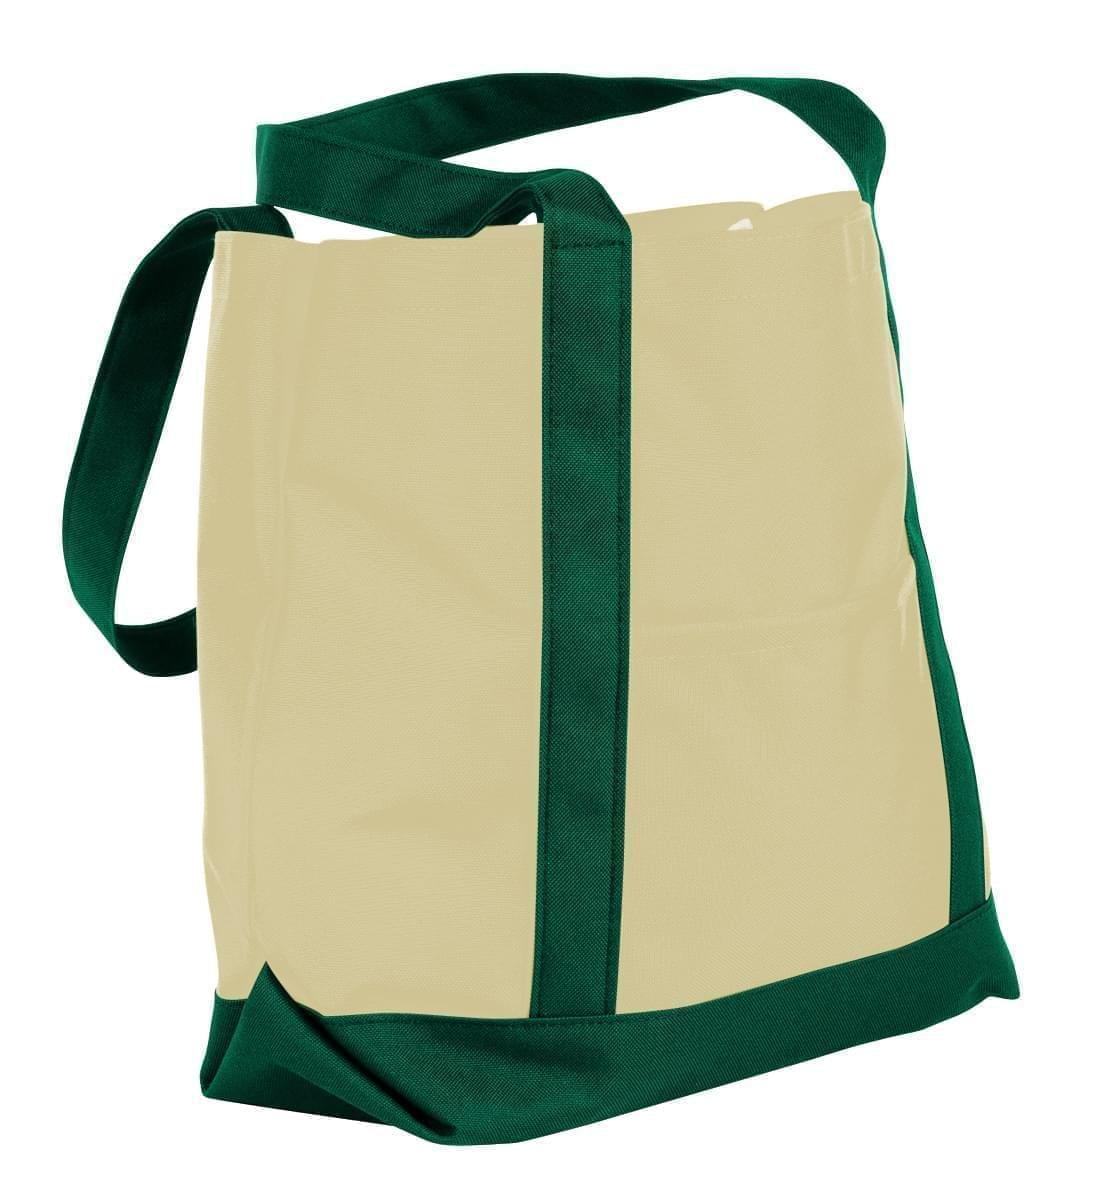 USA Made Canvas Fashion Tote Bags, Natural-Hunter Green, XAACL1UAKV